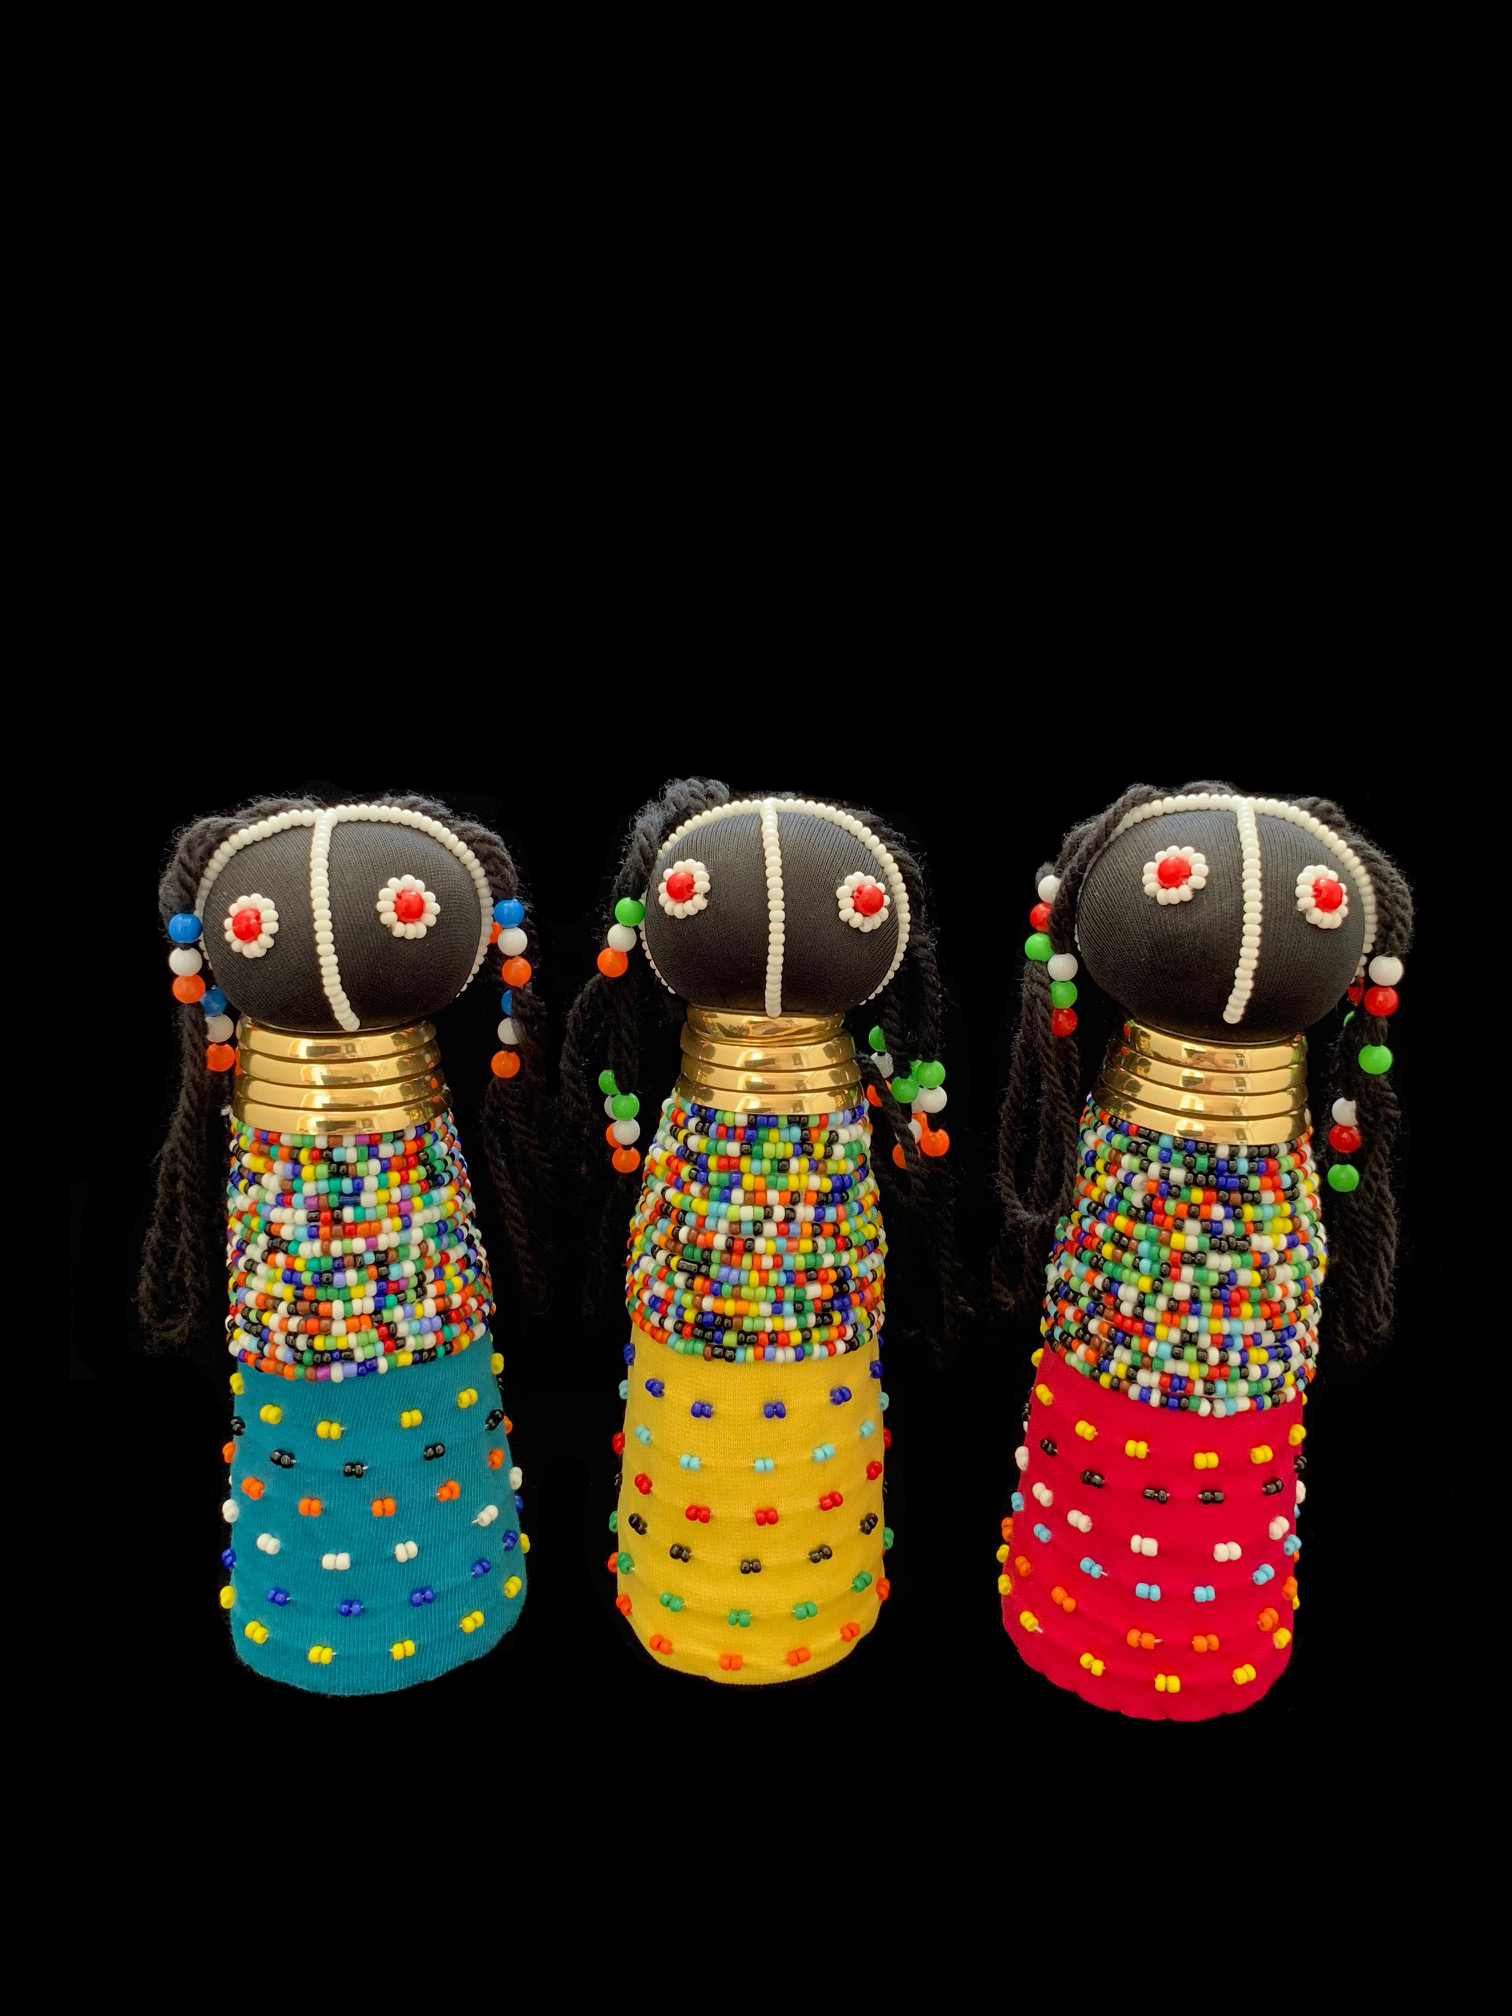 Beaded Rasta Doll - Ndebele People, South Africa